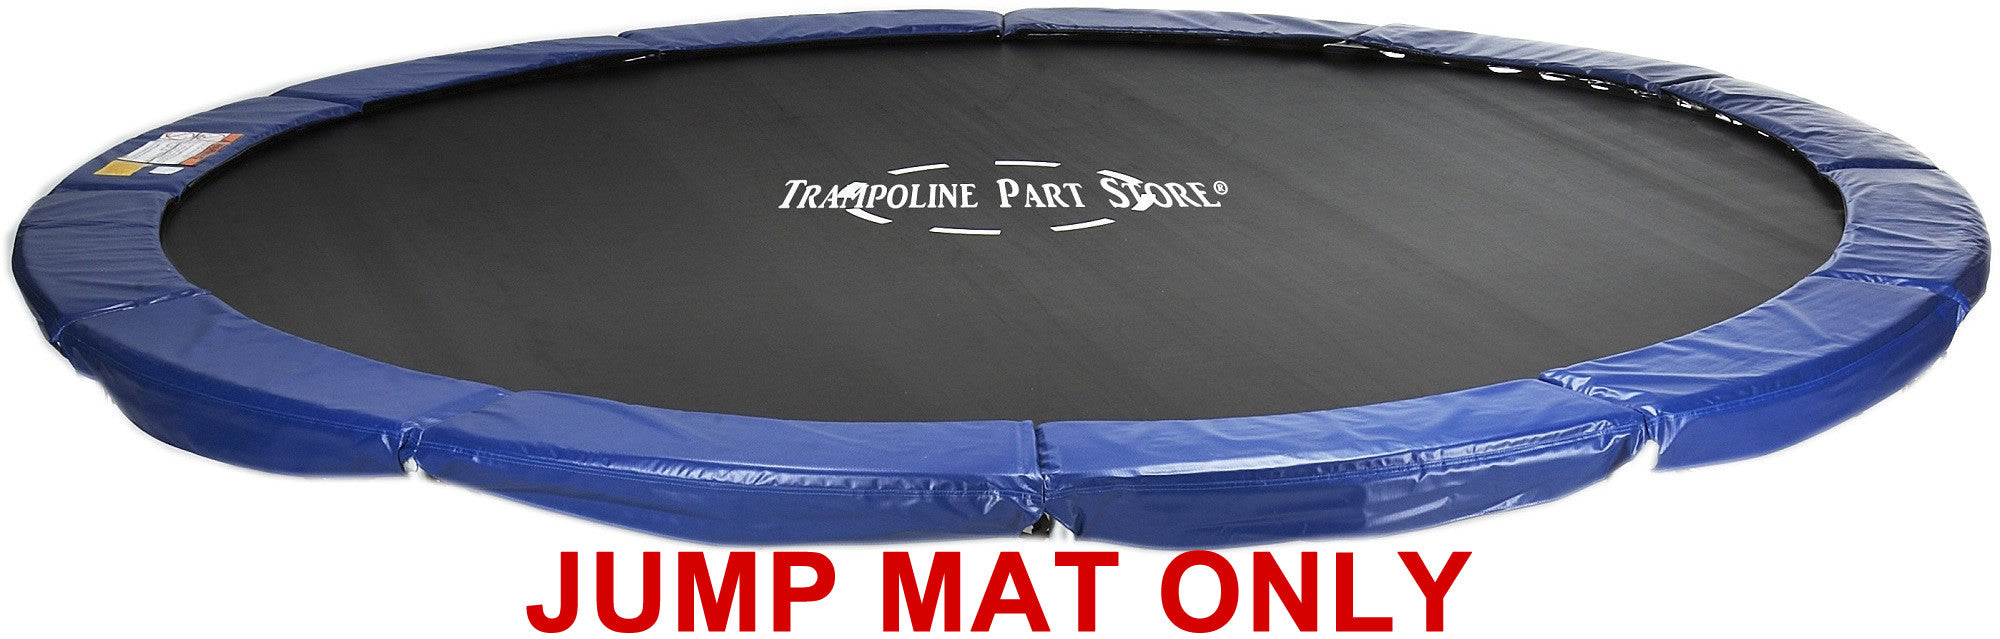 15' with 96-Vrings Trampoline Jumping Mat-ASTM Safety Approved